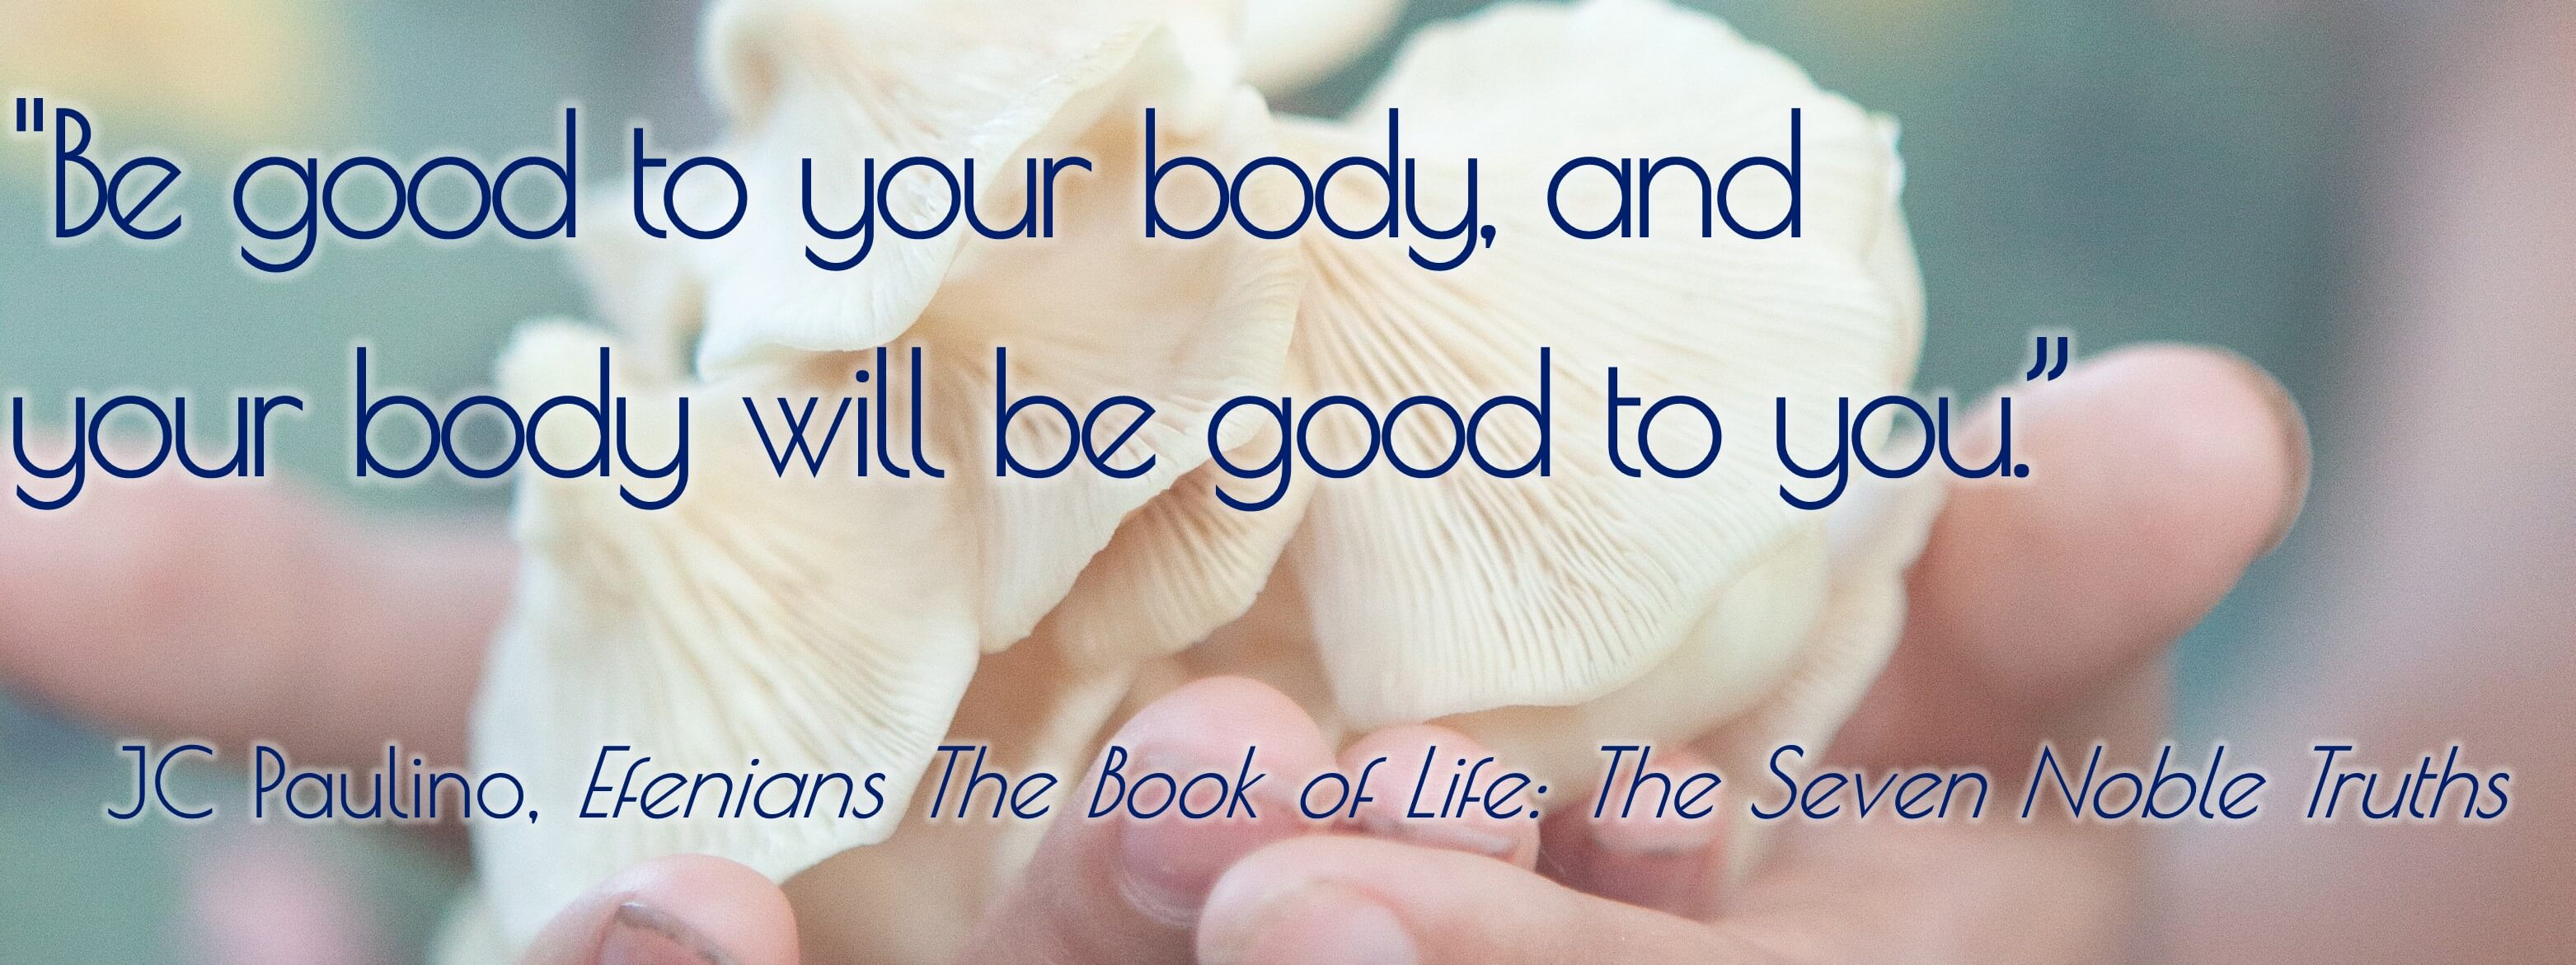 Be good to your body quote  JC Paulino